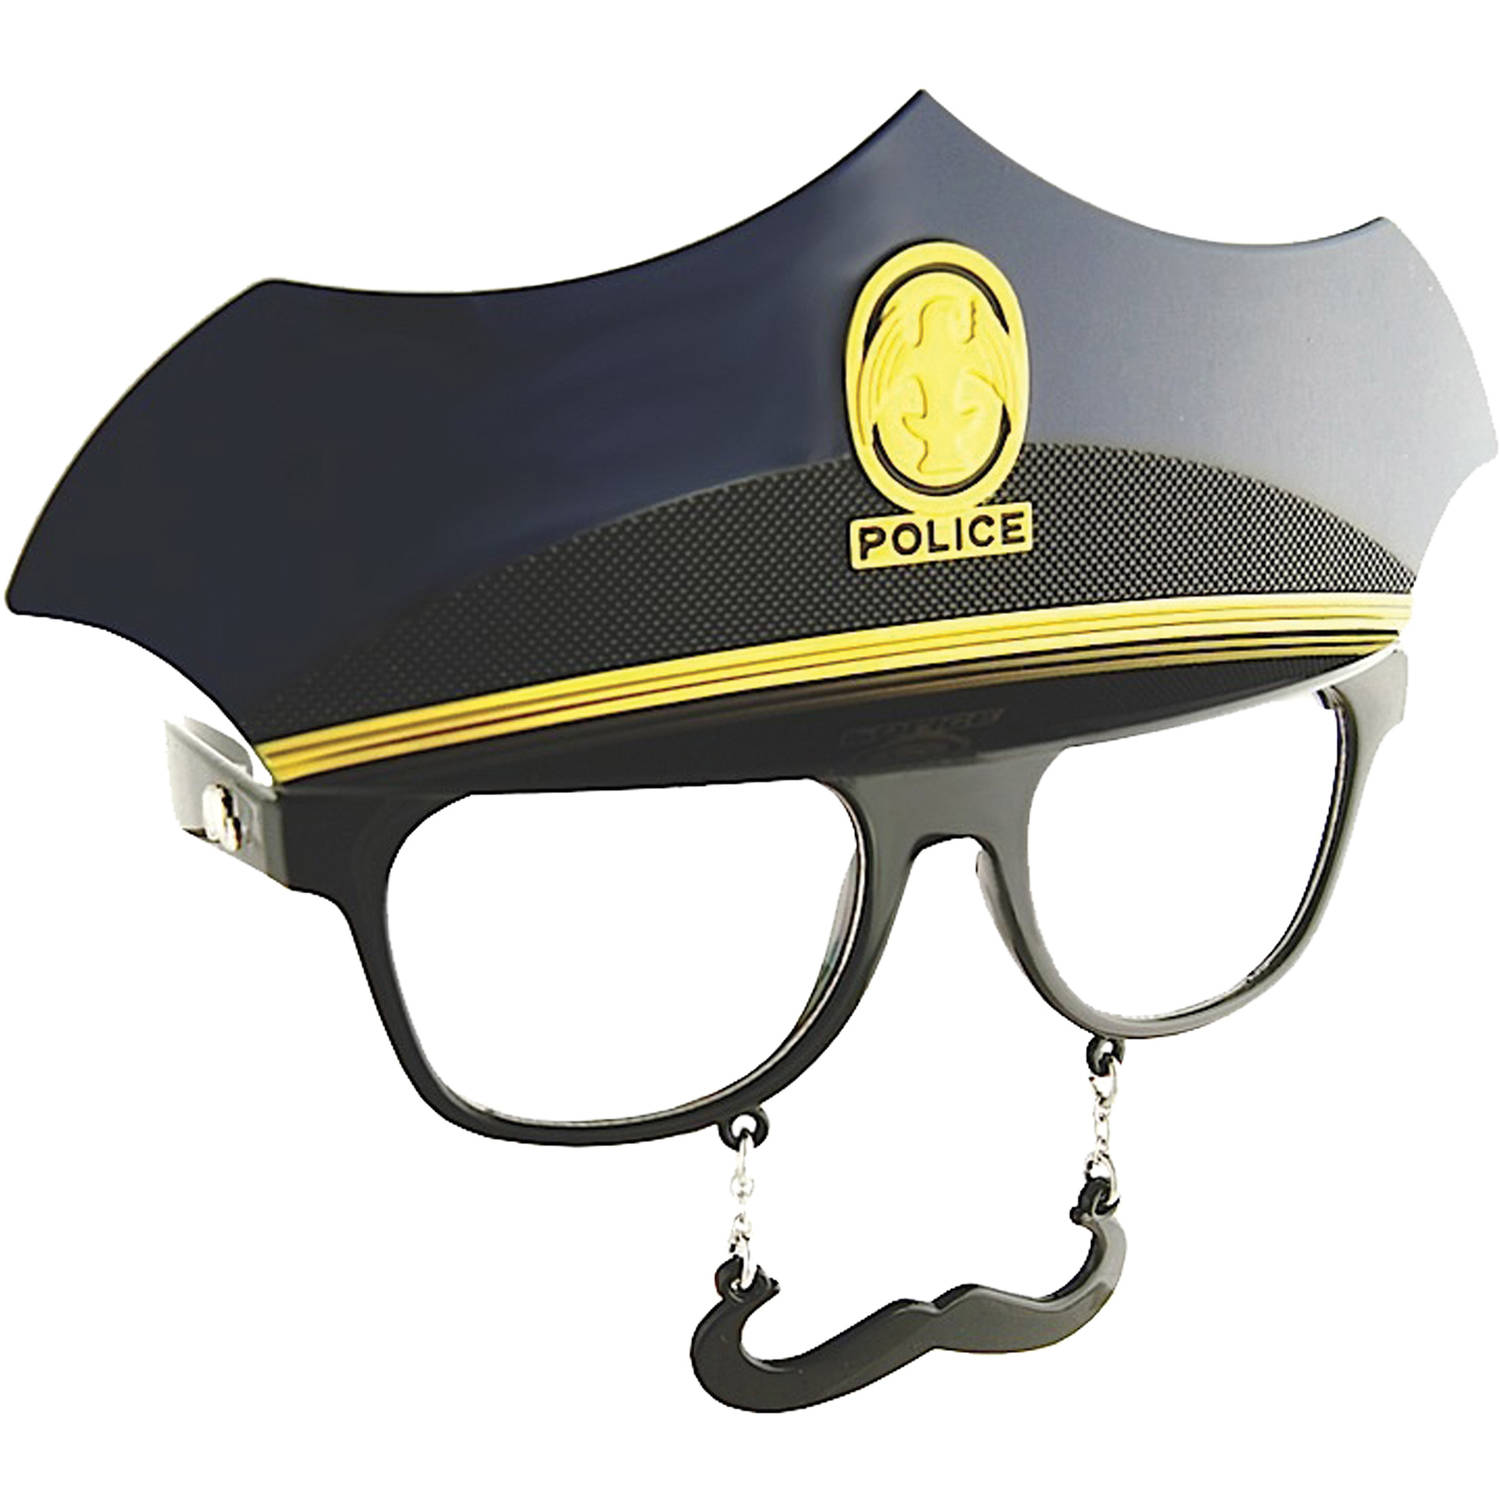 Police Clear Sunstache Adult Halloween Accessory